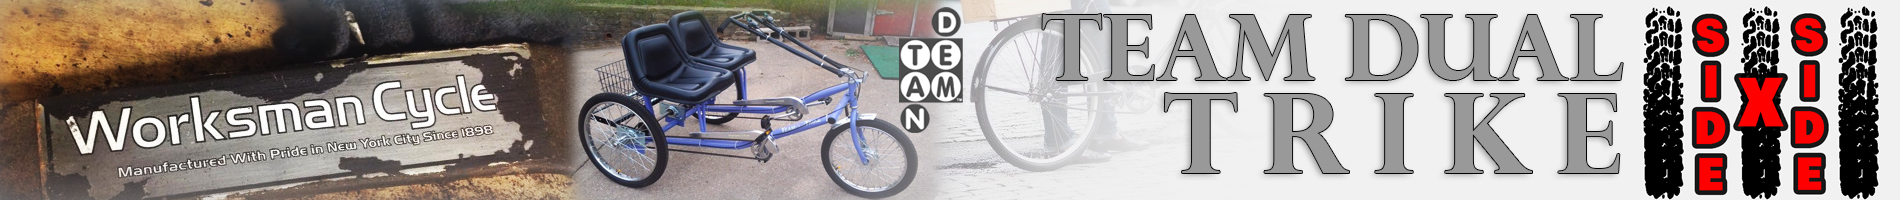 Side By Side Team Dual Tricycle From Worksman Cycles